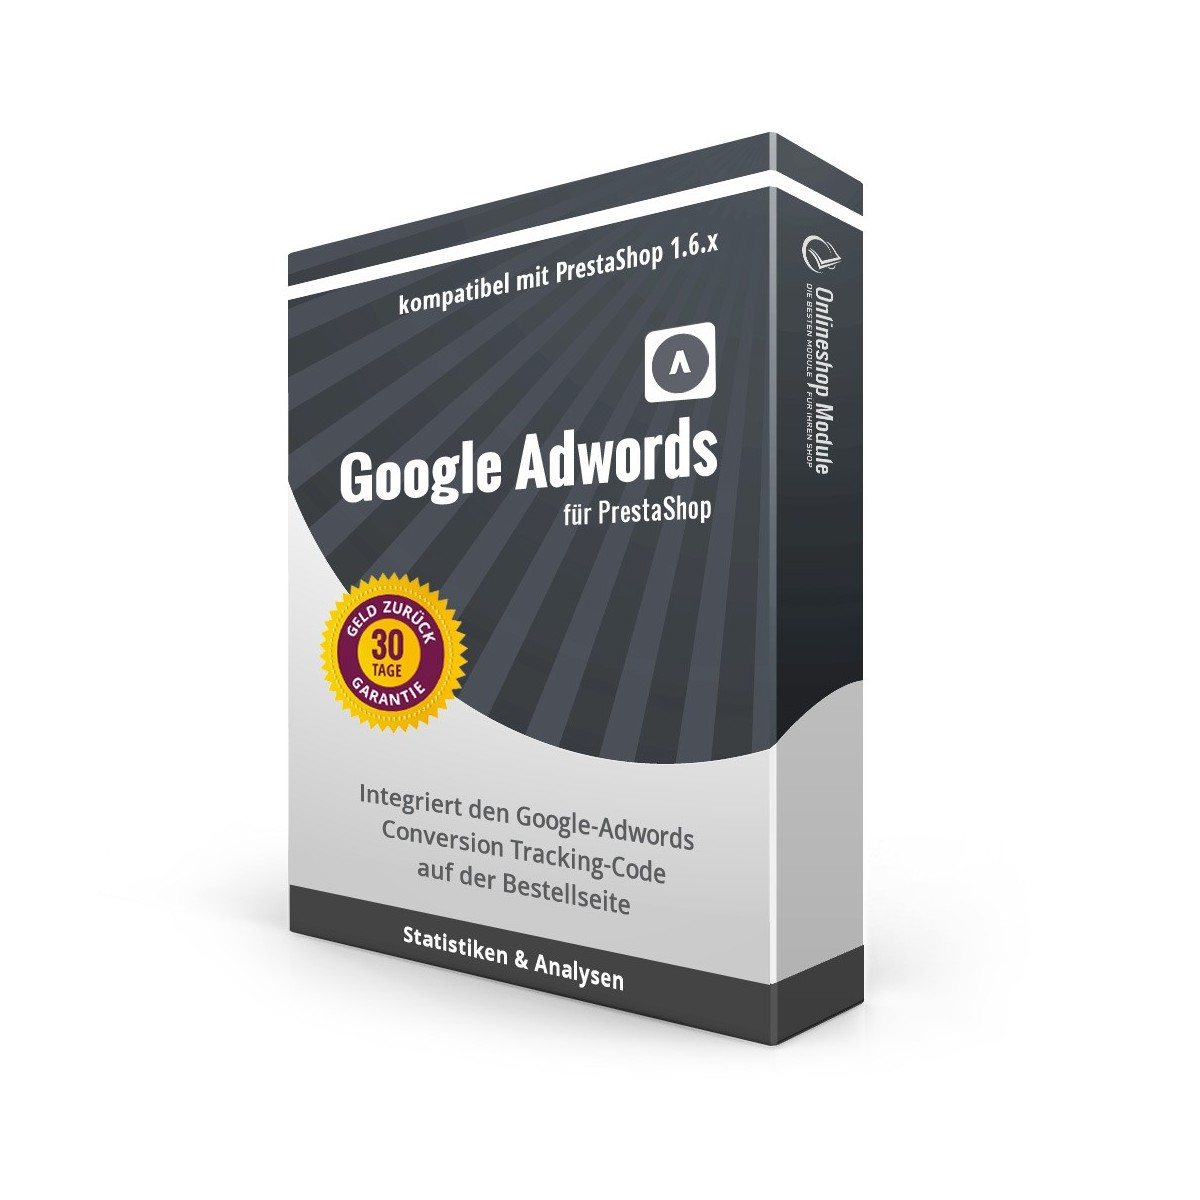 Google Adwords für PrestaShop 1.6